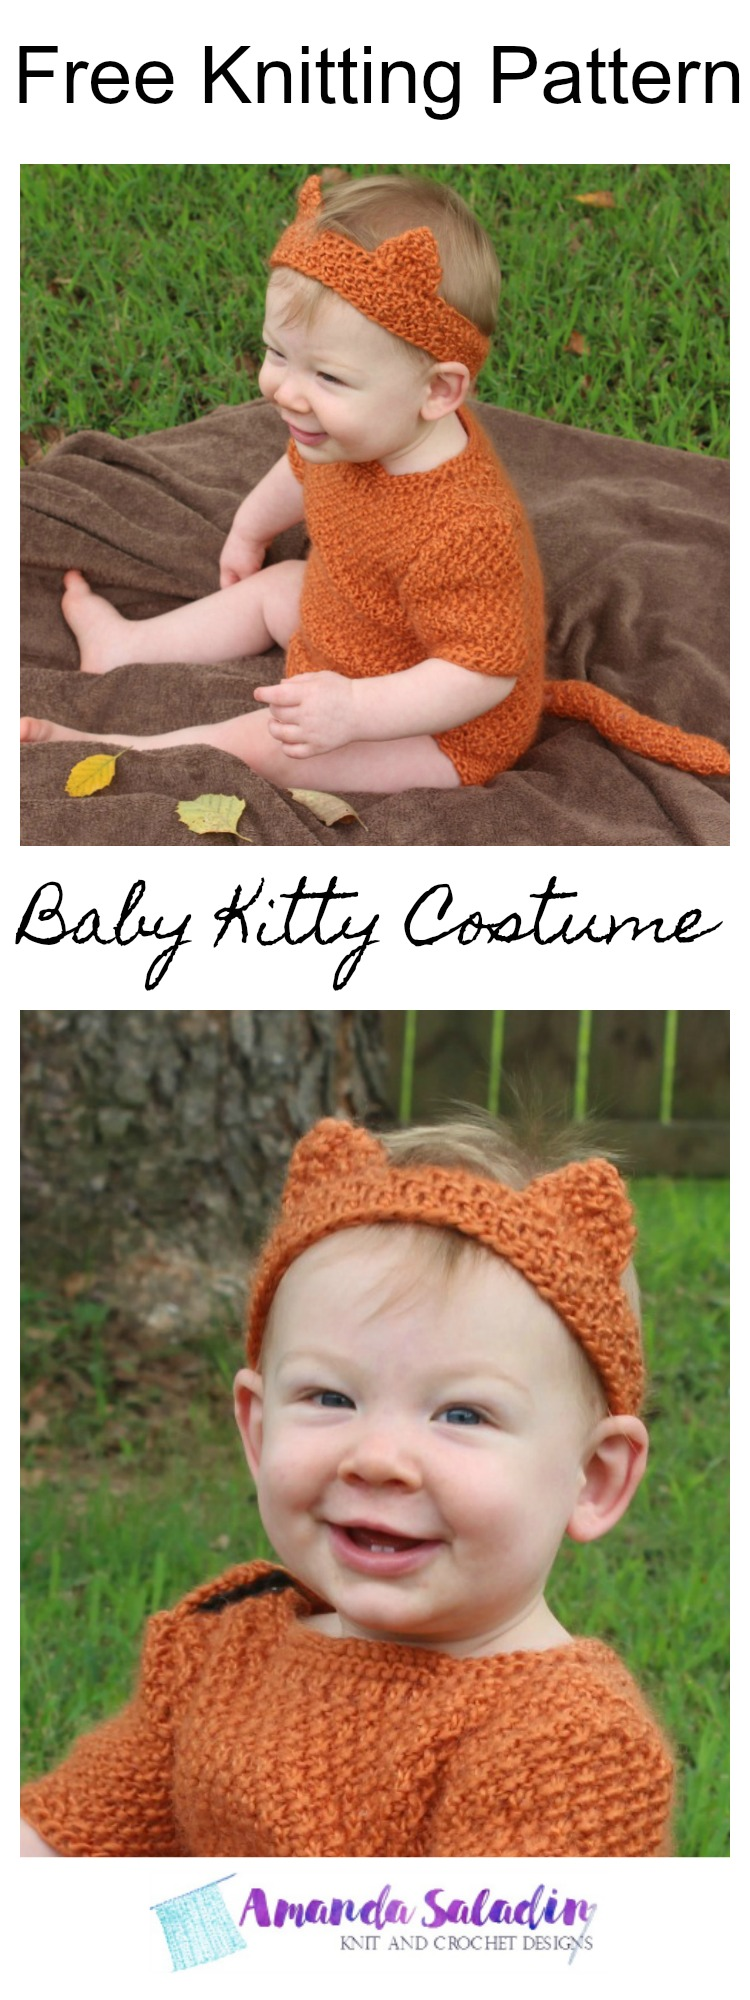 Free Knitting Pattern - Baby Kitty Costume